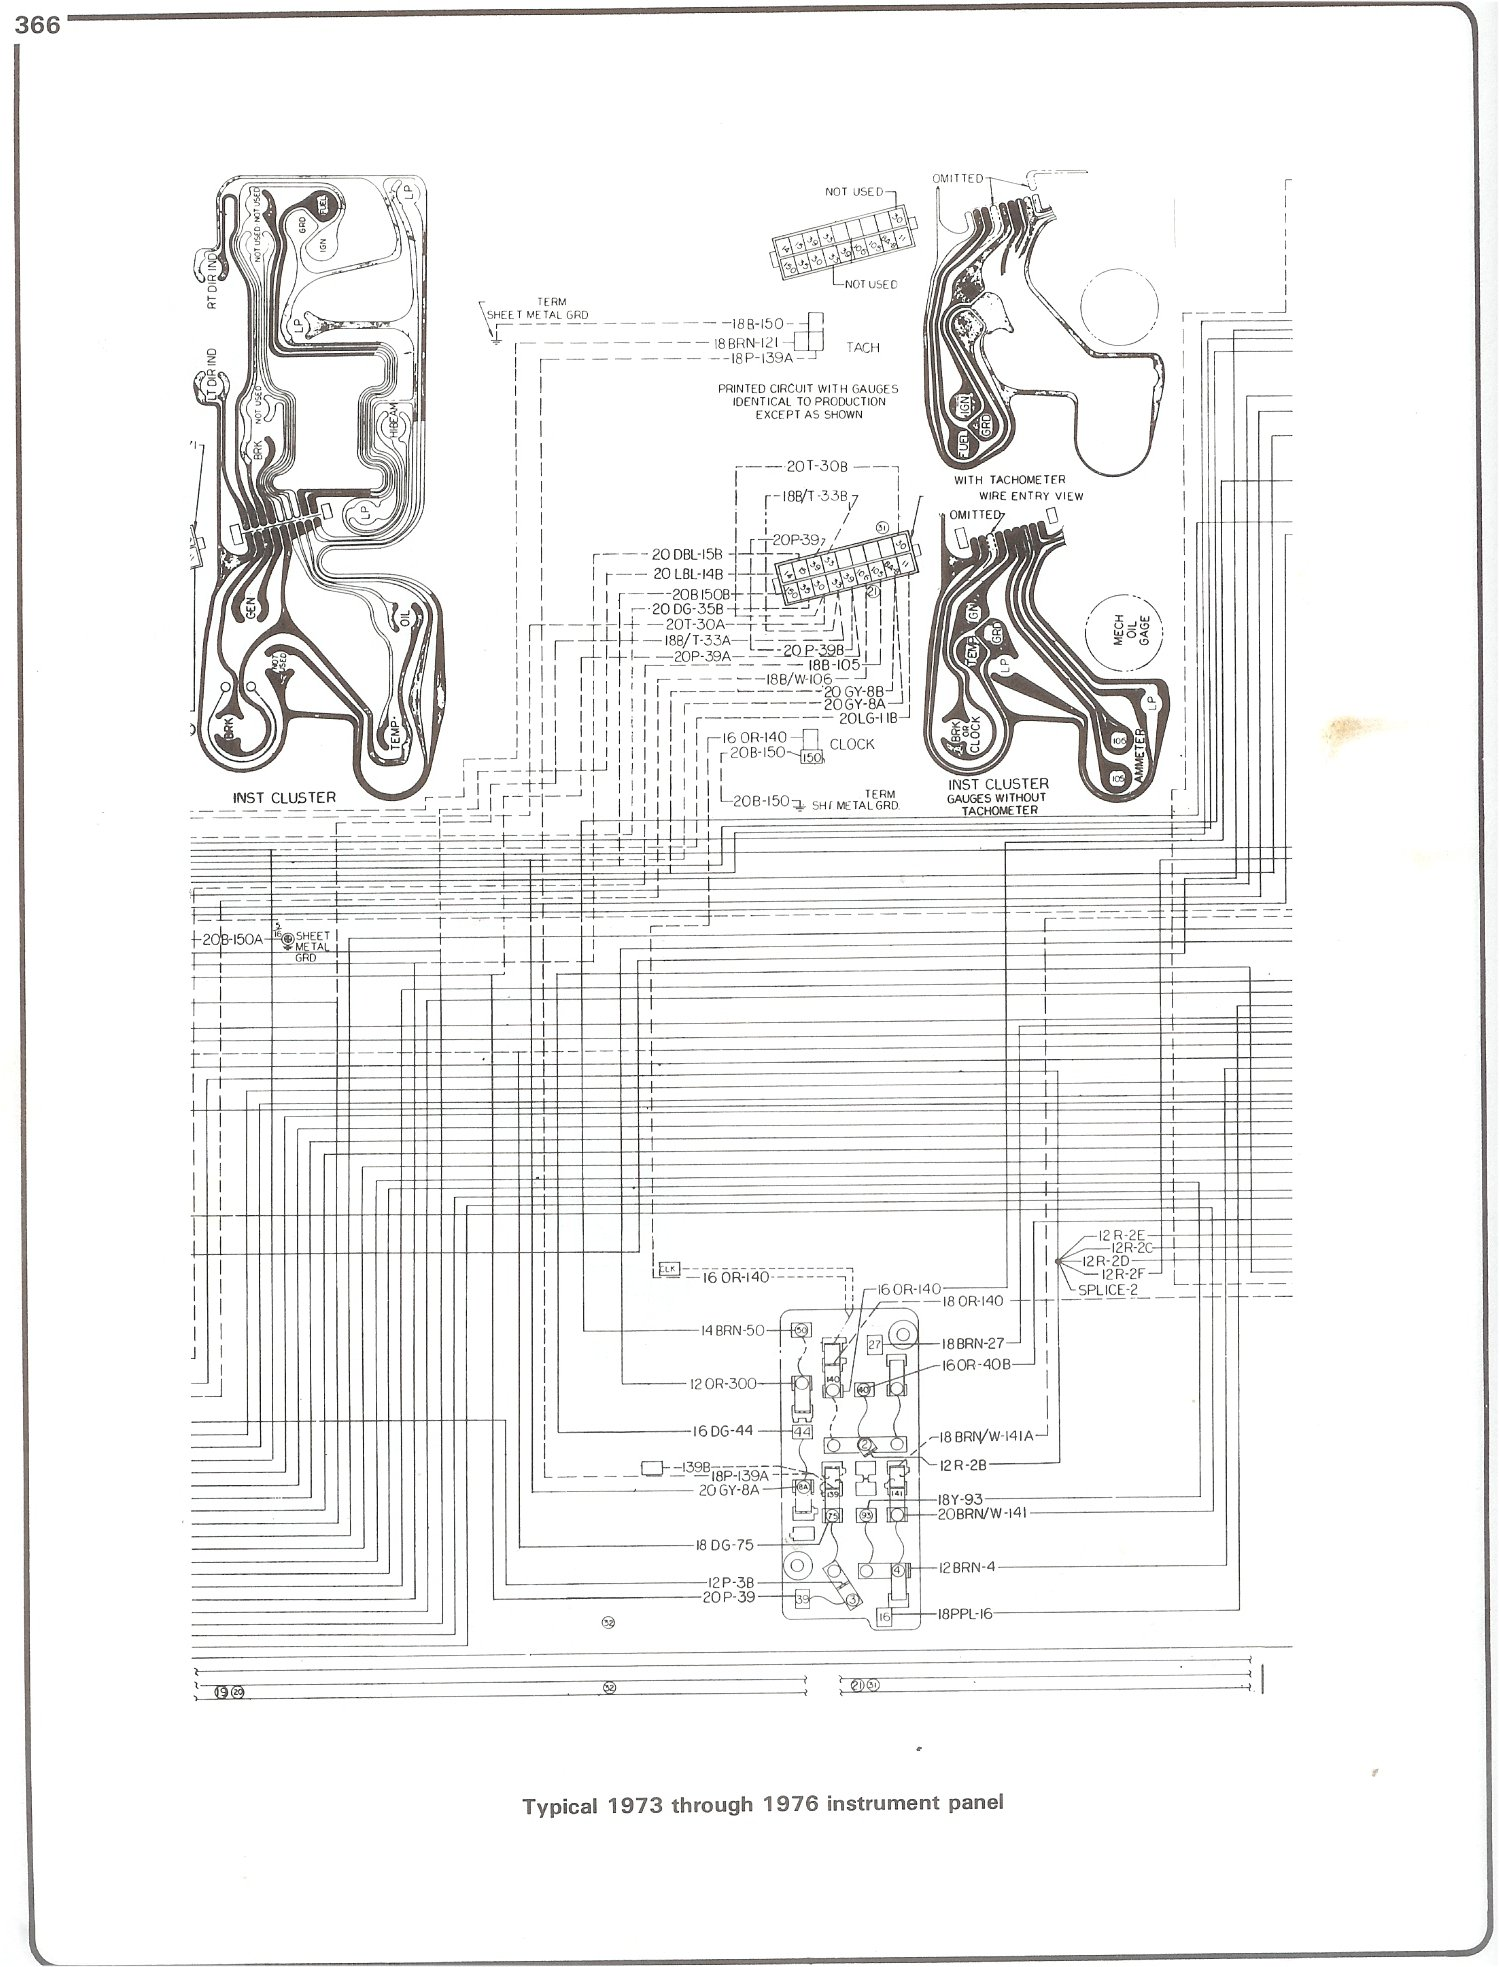 Wiring Diagram For 1978 Chevy Truck Data 1988 Gmc Sierra Diagrams Complete 73 87 Harness